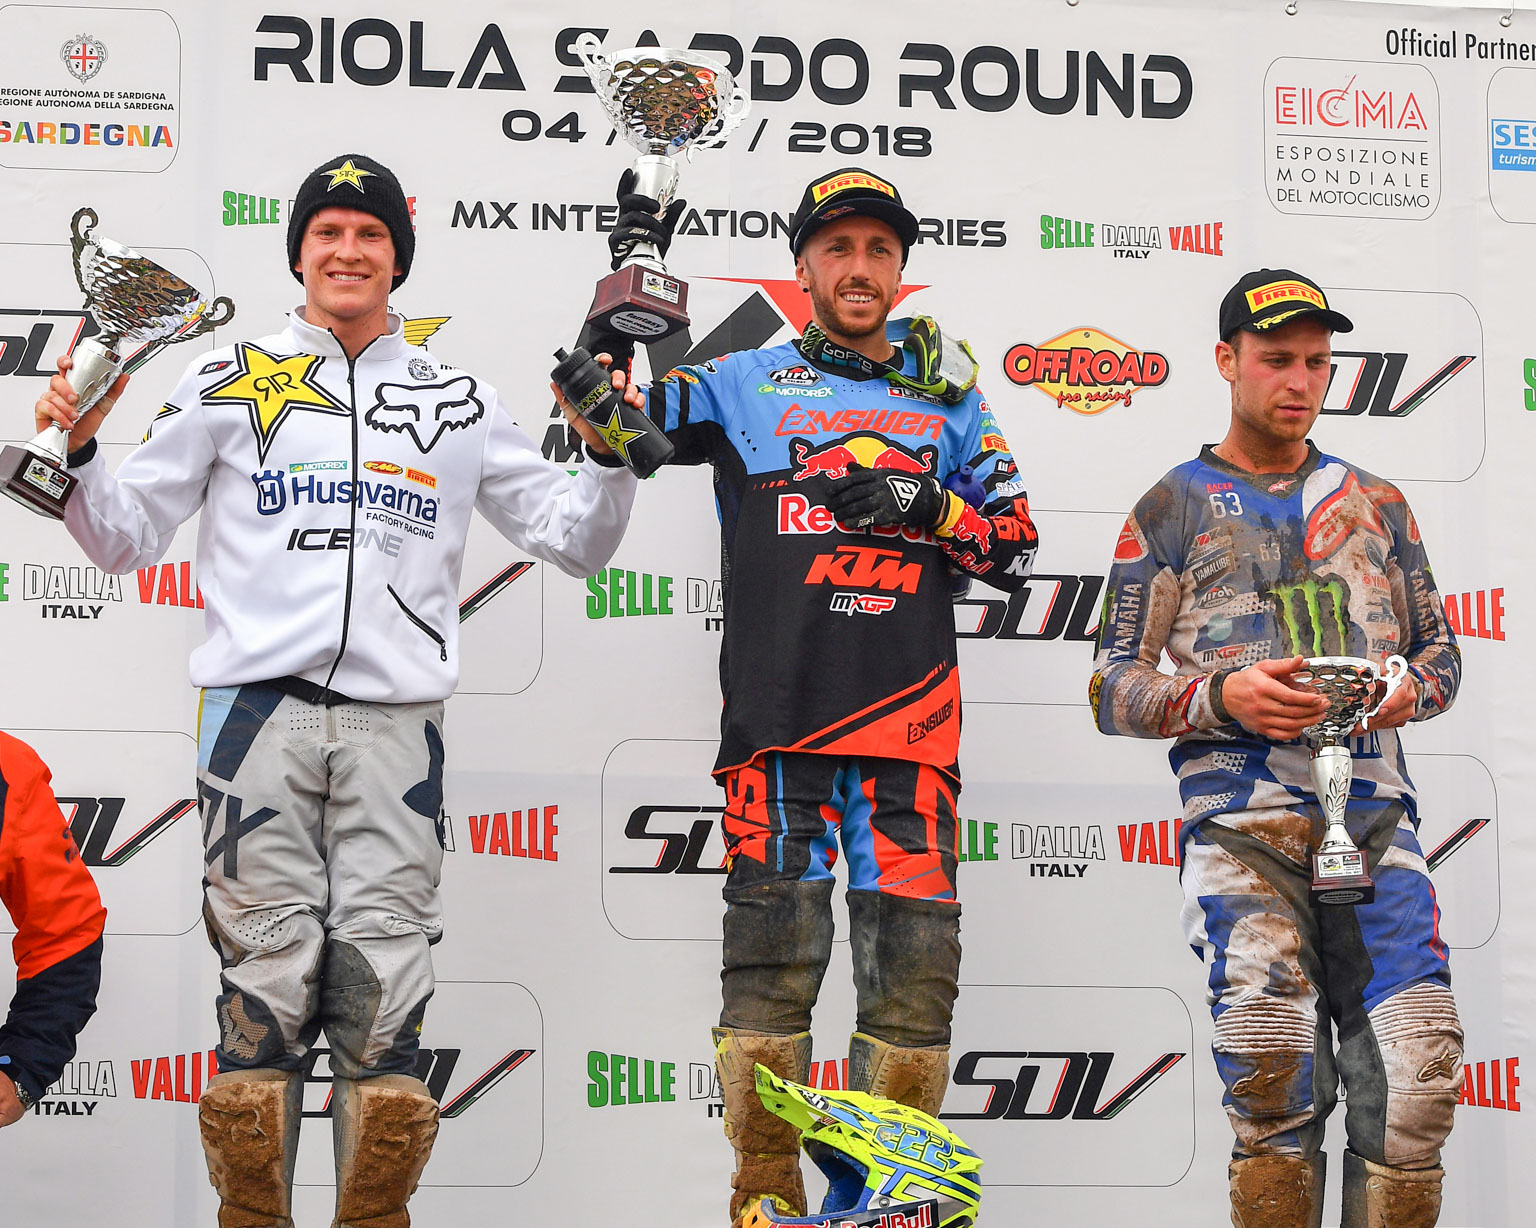 Cairoli won the MX1 race from Max Anstie and Jeremy Van Horebeek